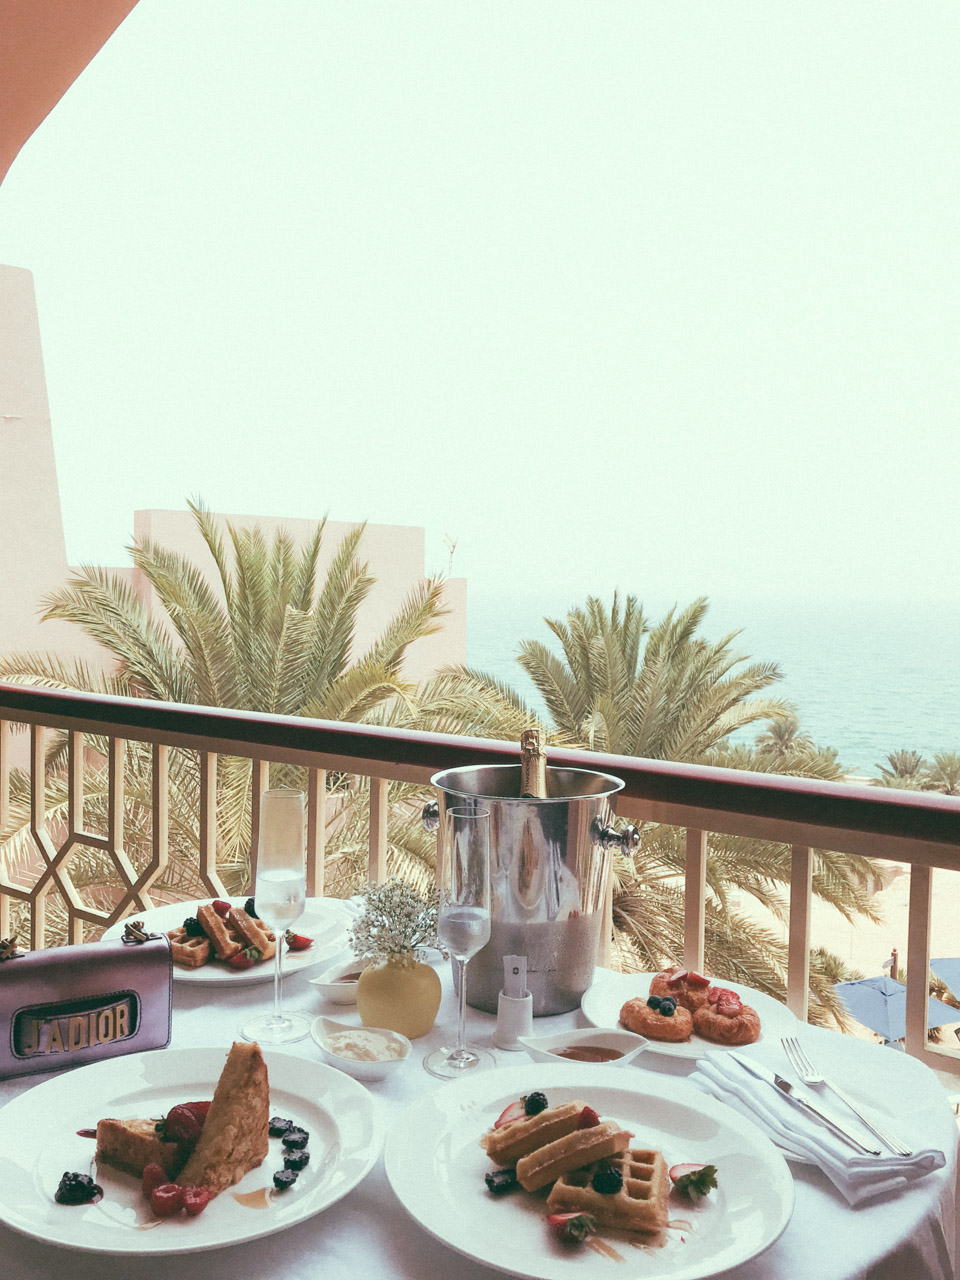 Luxury Breakfast with a view